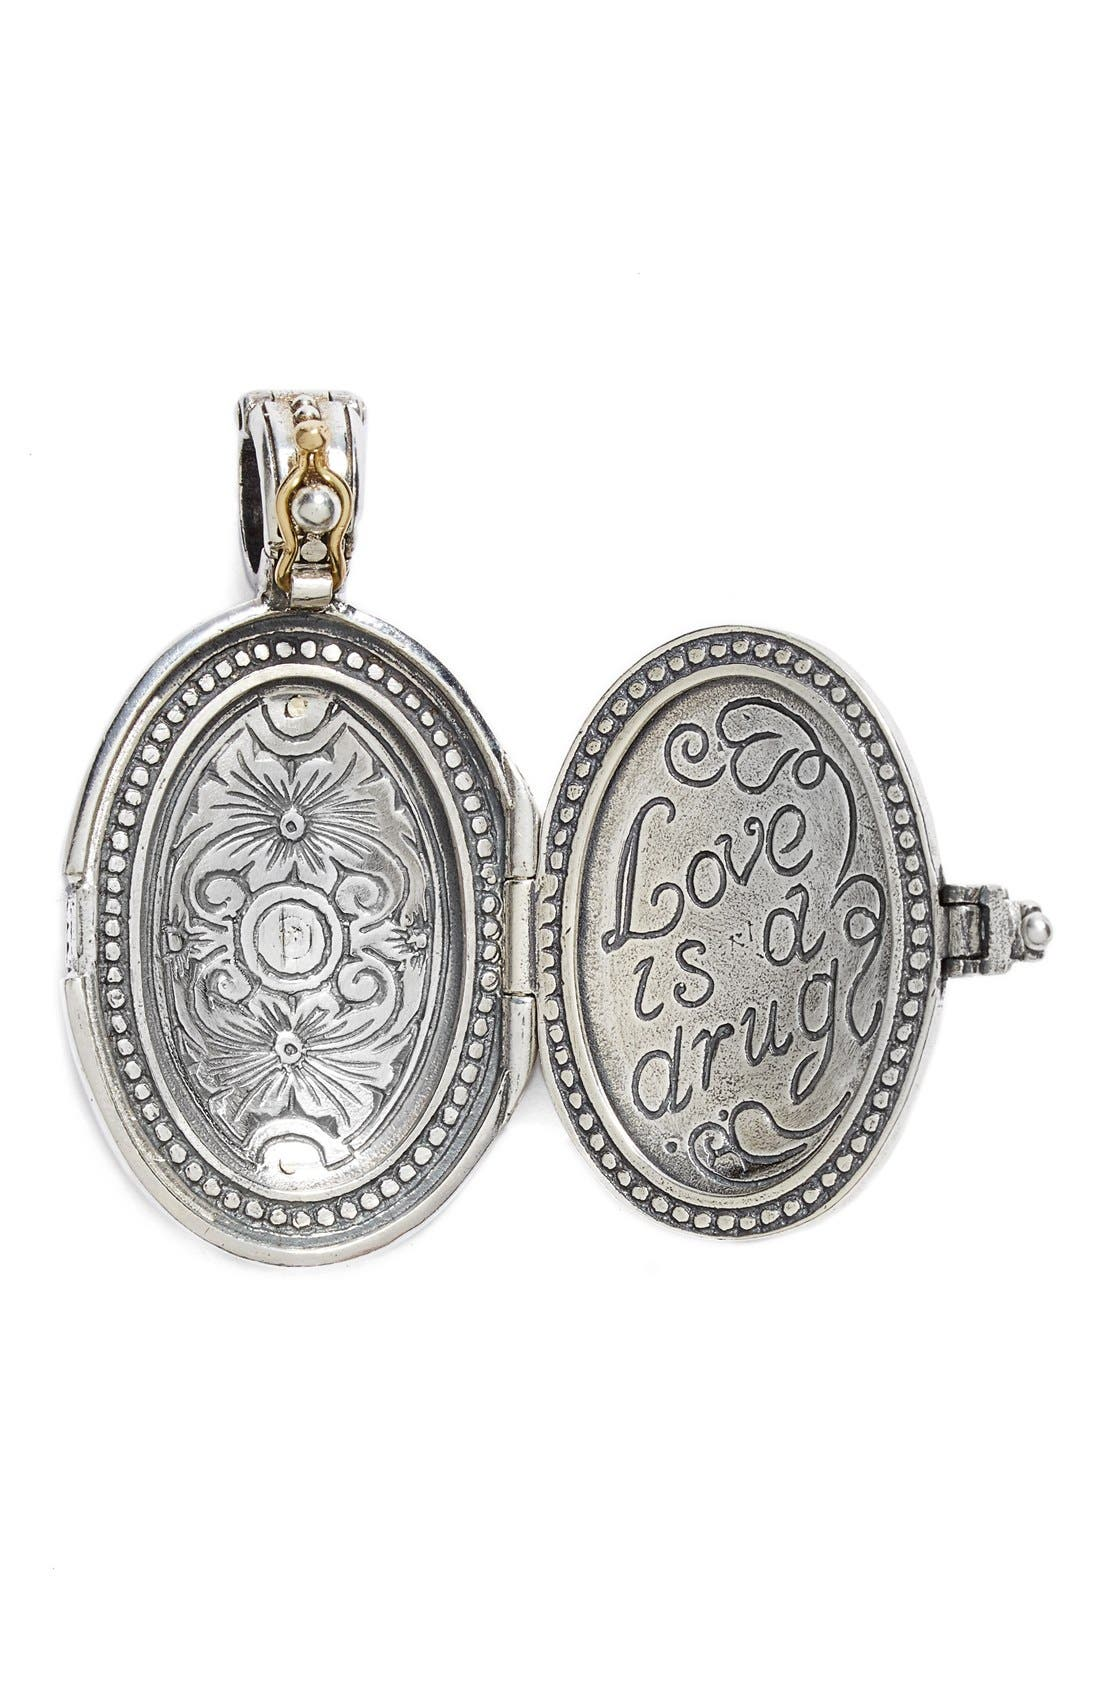 'Hebe' Etched Locket Pendant,                             Alternate thumbnail 2, color,                             Silver/ Gold